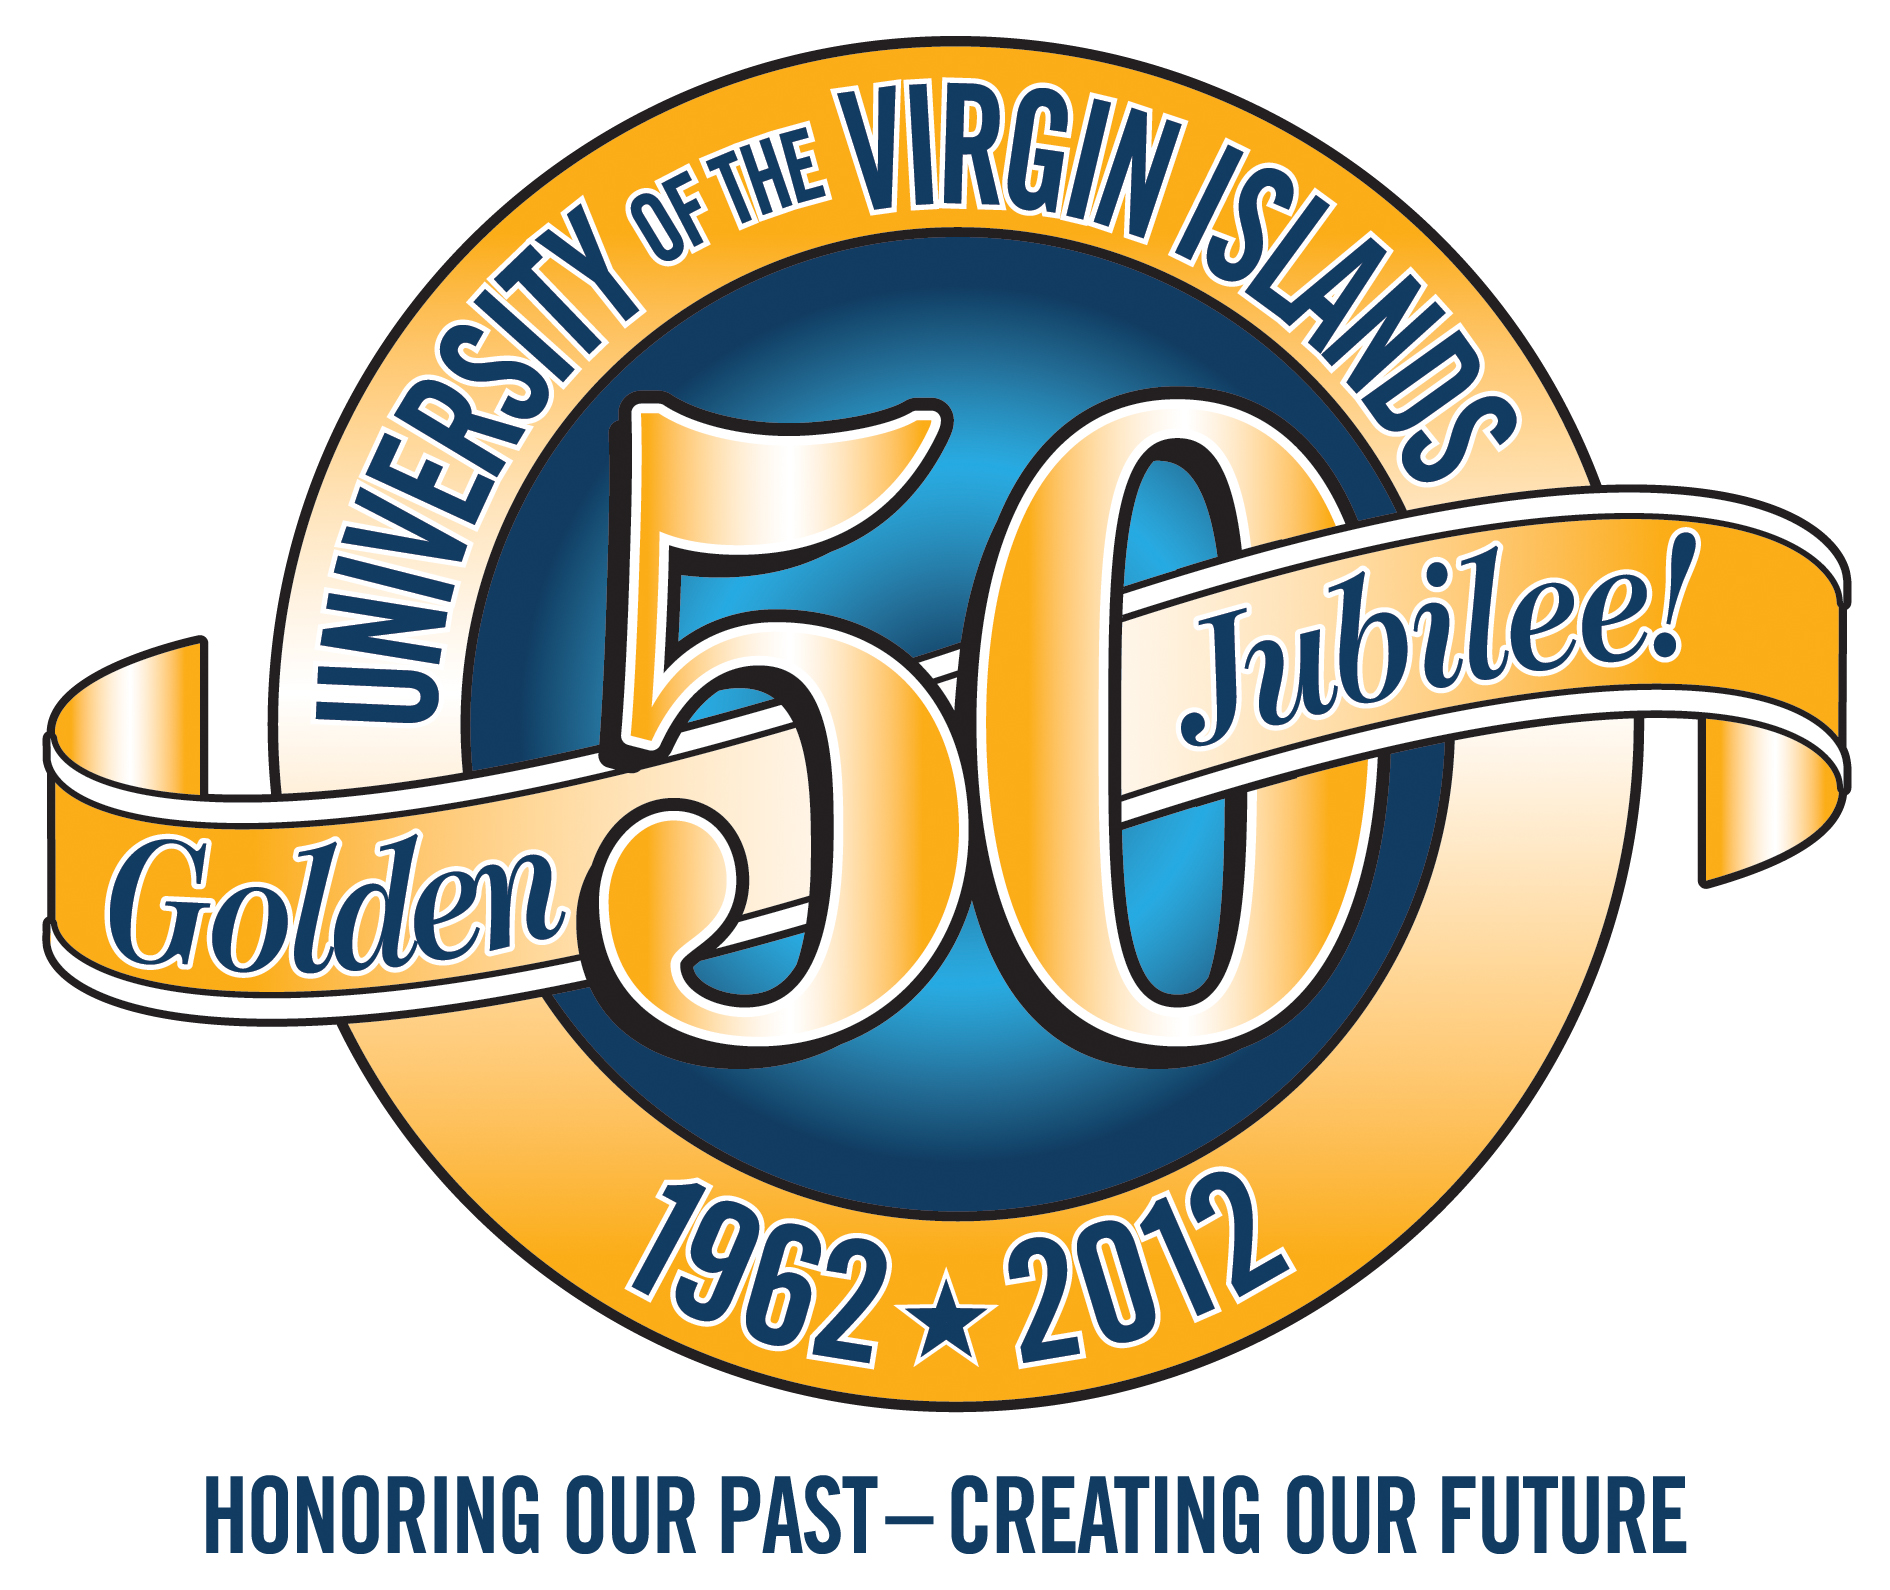 Jubilee of 50 years: what to give